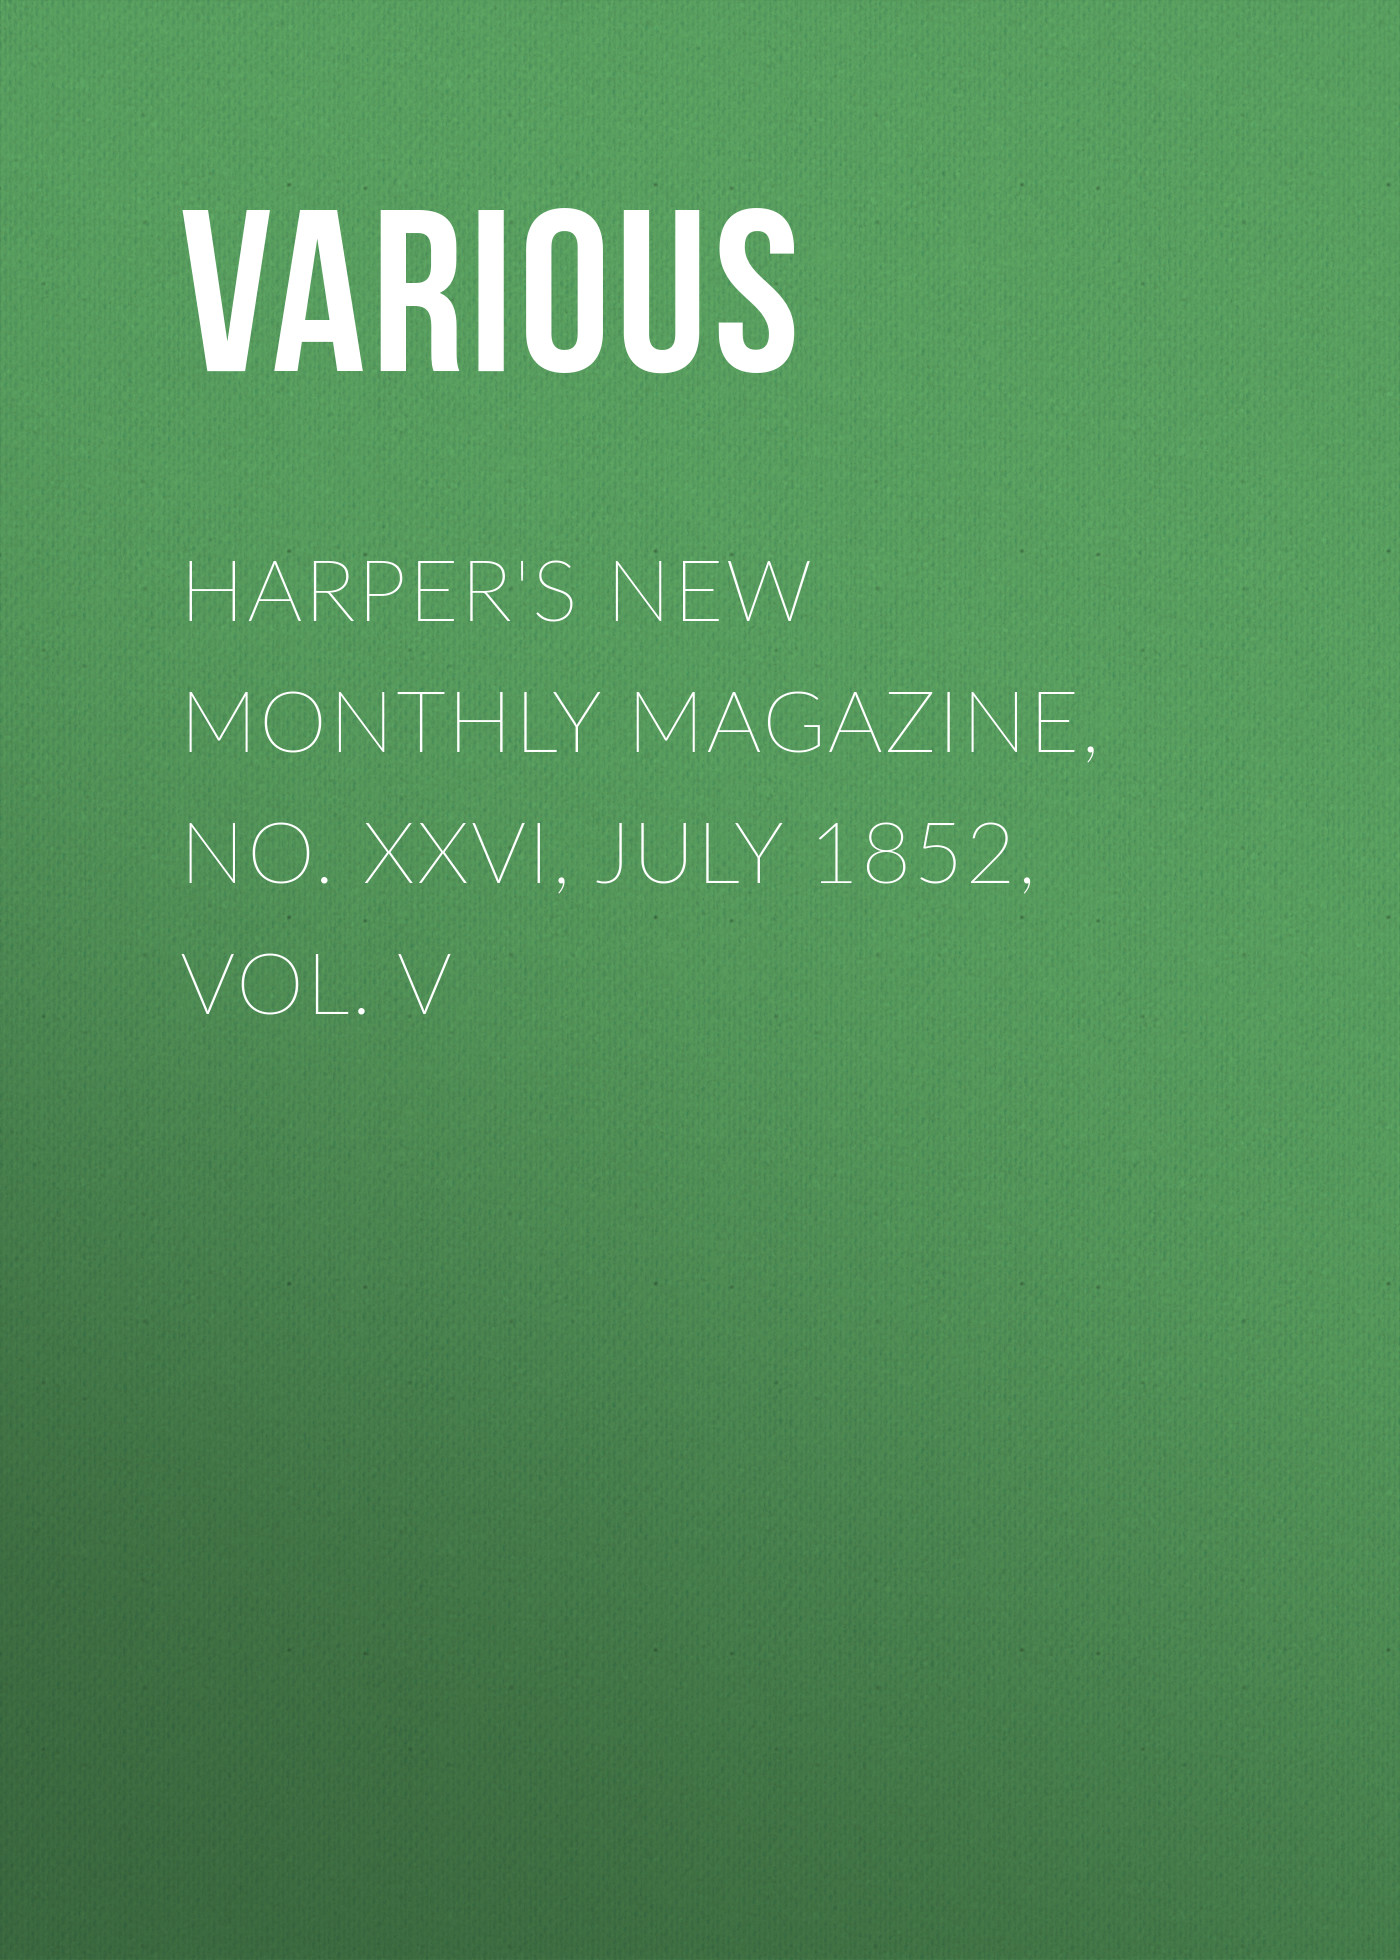 Various Harper's New Monthly Magazine, No. XXVI, July 1852, Vol. V various harper s new monthly magazine vol iv no xx january 1852